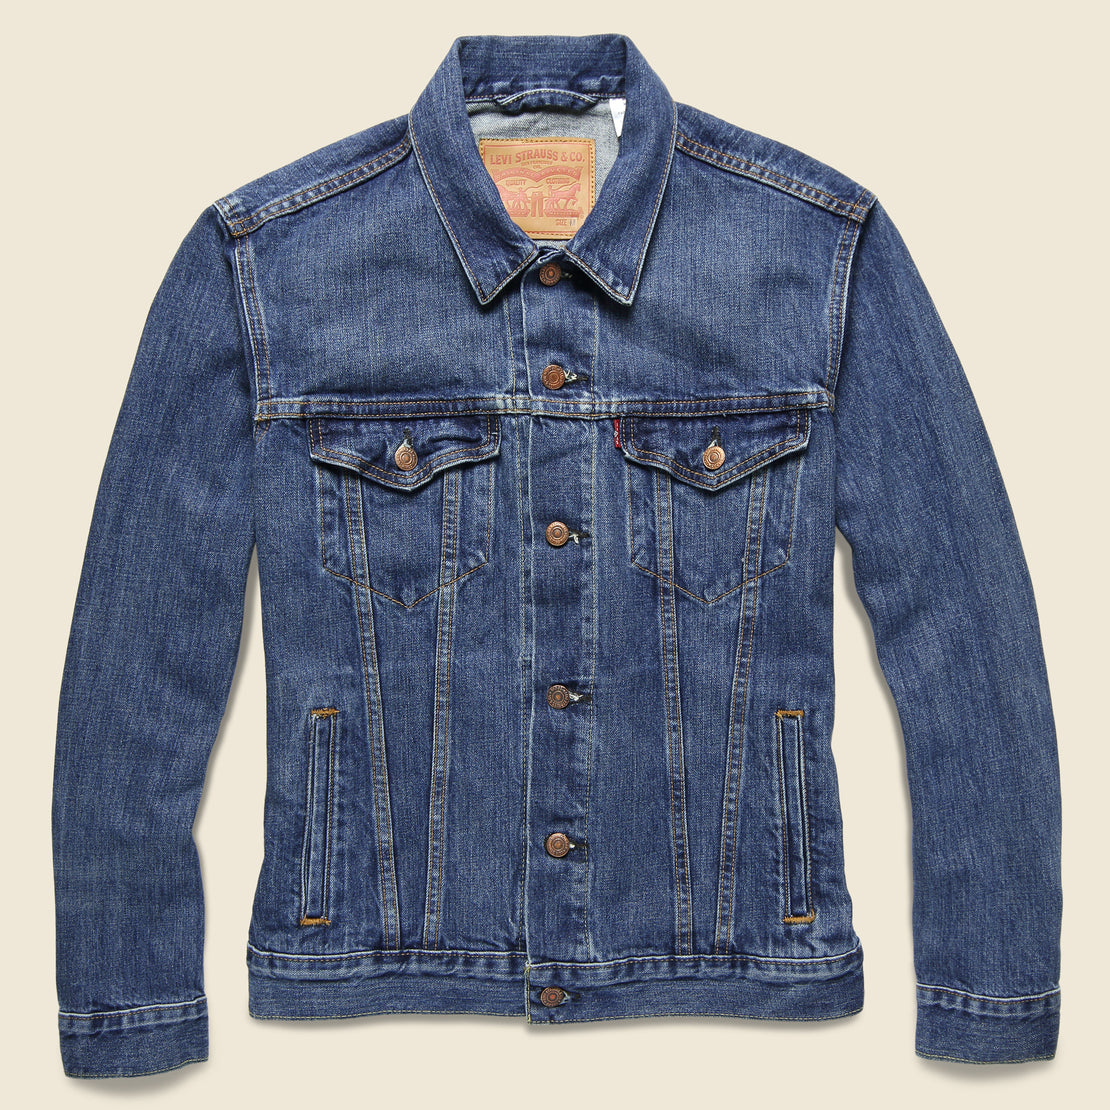 081754829 Trucker Jacket - The Shelf